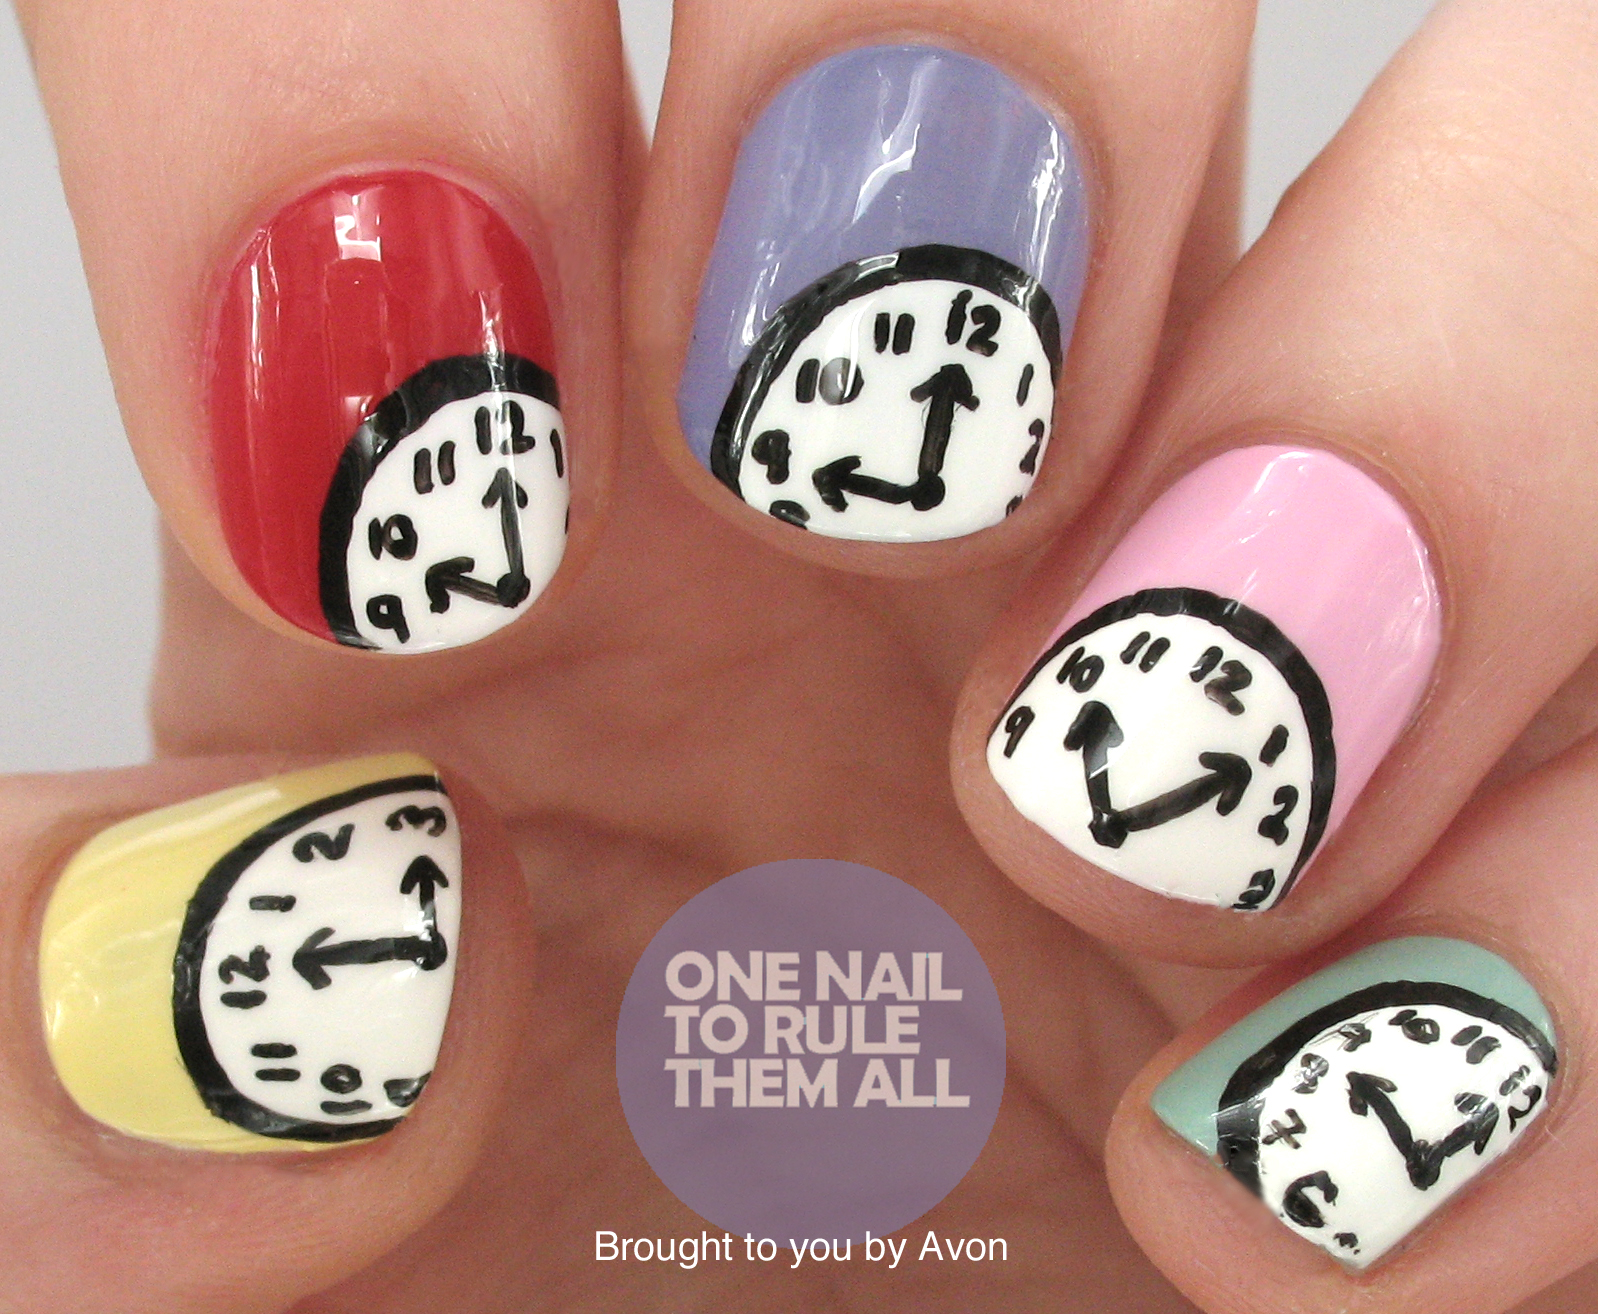 One Nail To Rule Them All Clock Nail Art For Avon